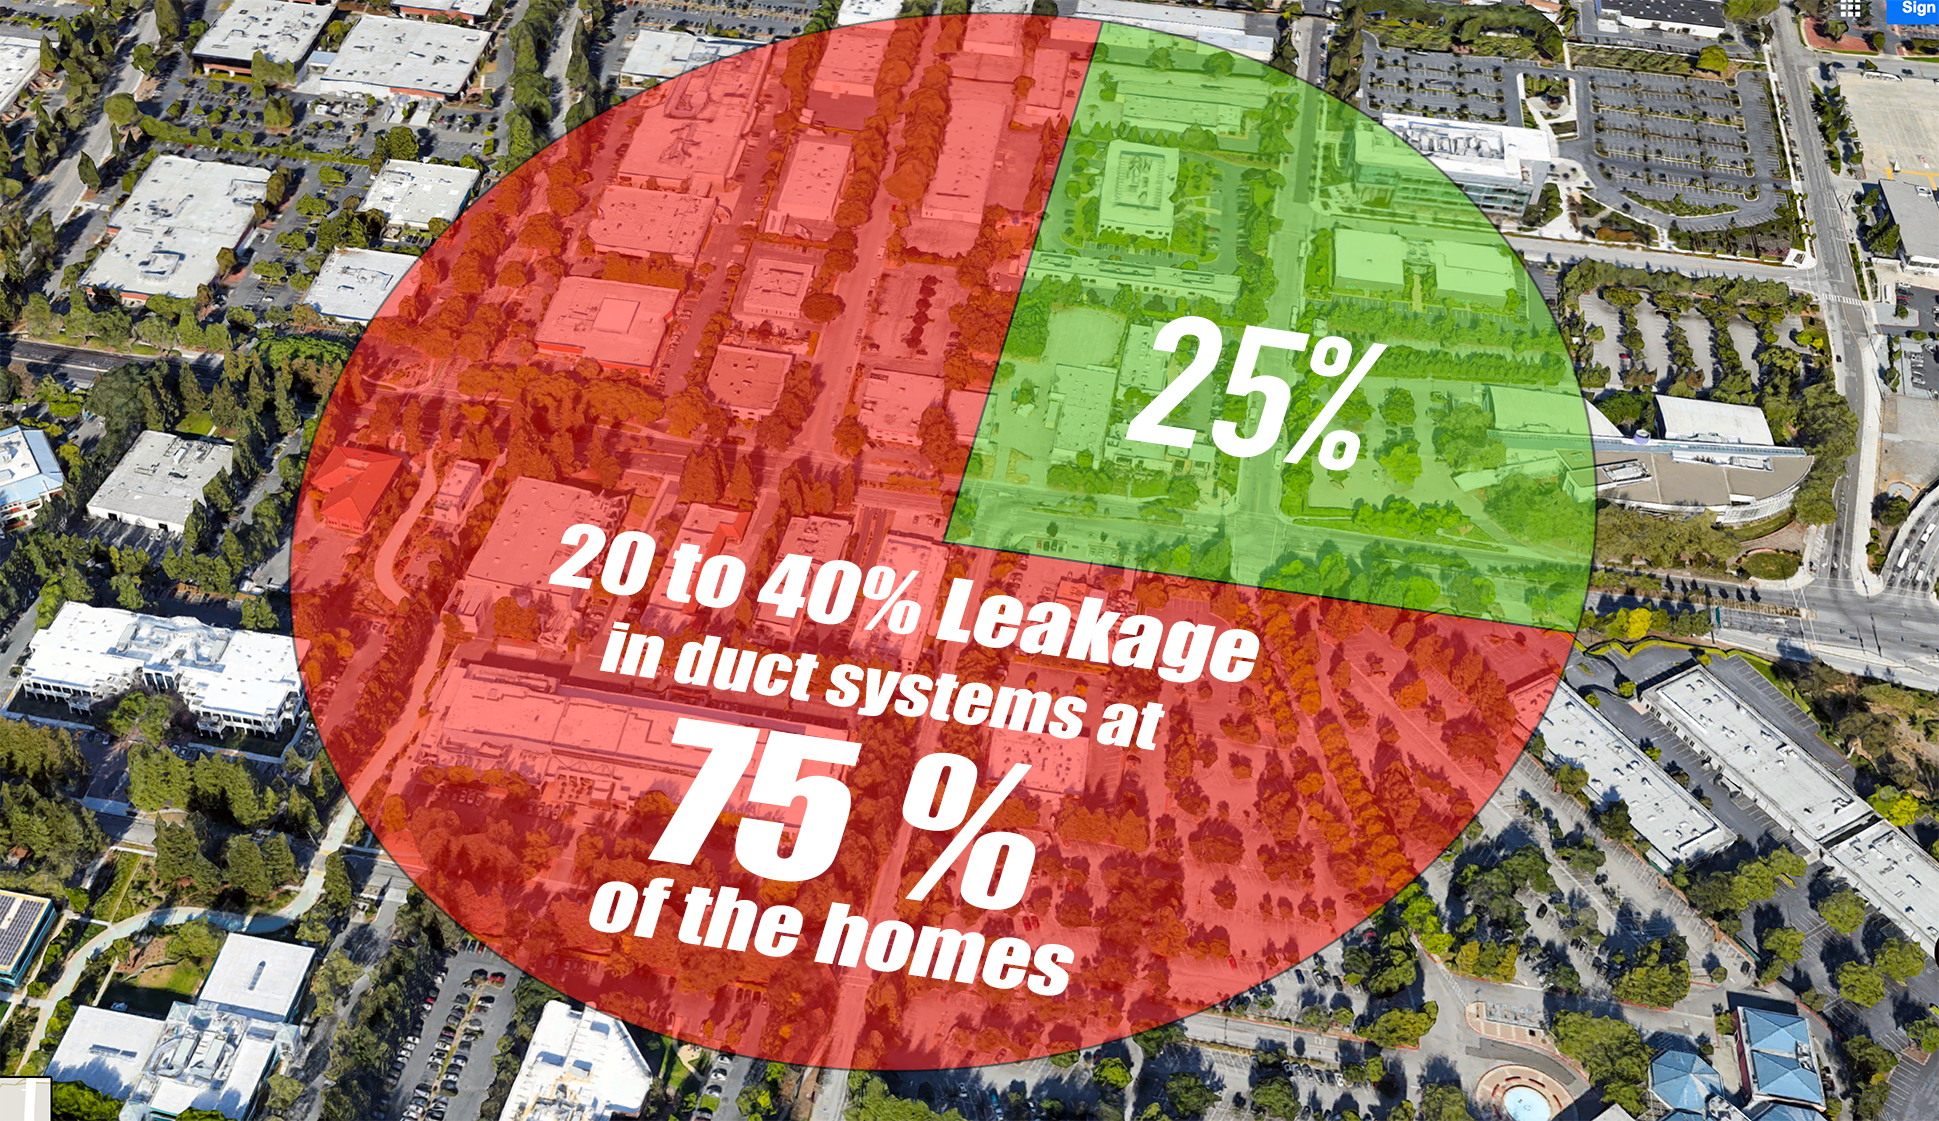 20 to 40% leakage in duct systems at 75 % of the homes